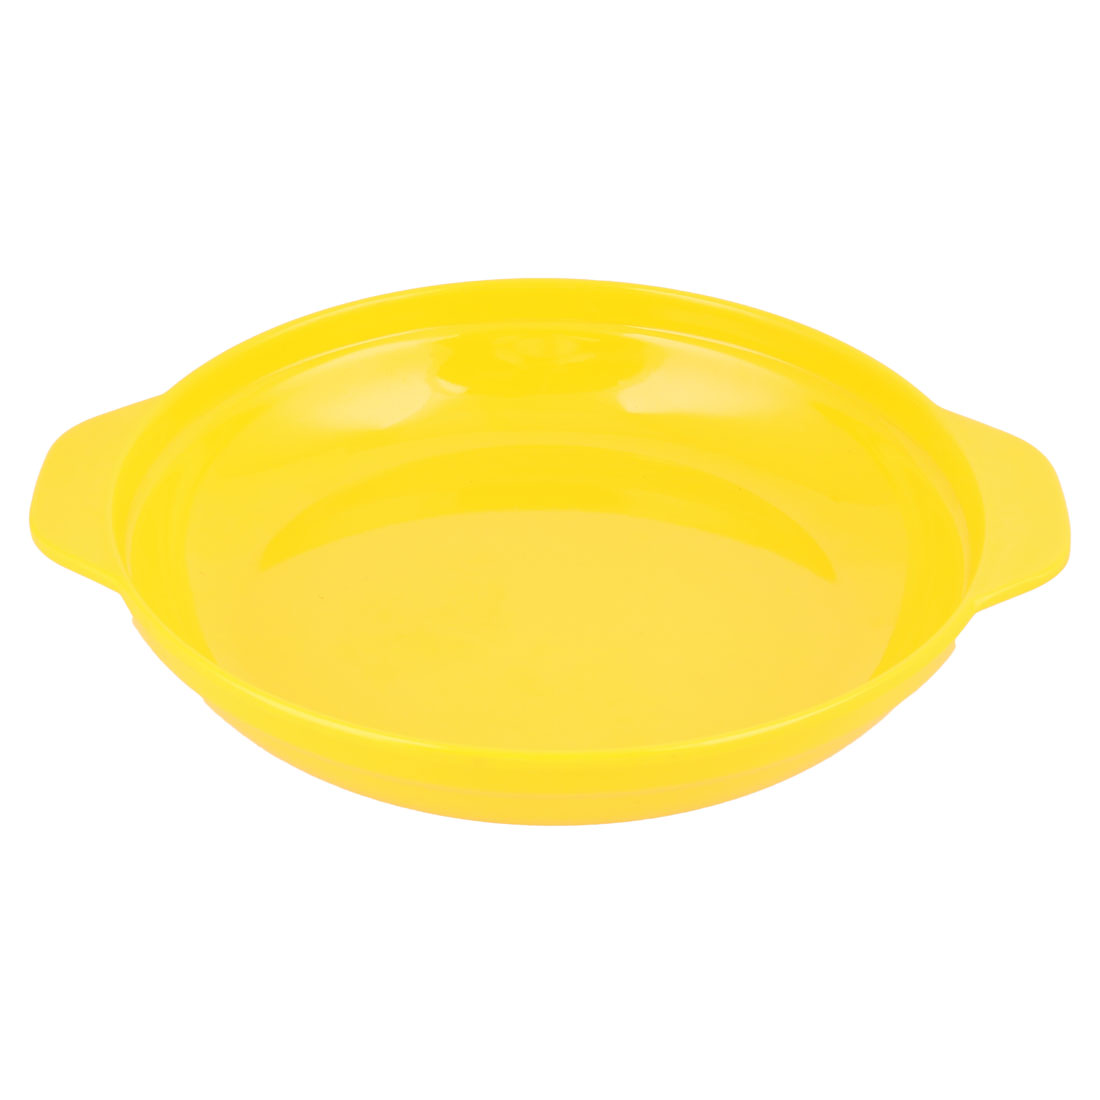 Home Kitchen Plastic Double Ear Design Food Vegetables Holder Plate Tray Yellow